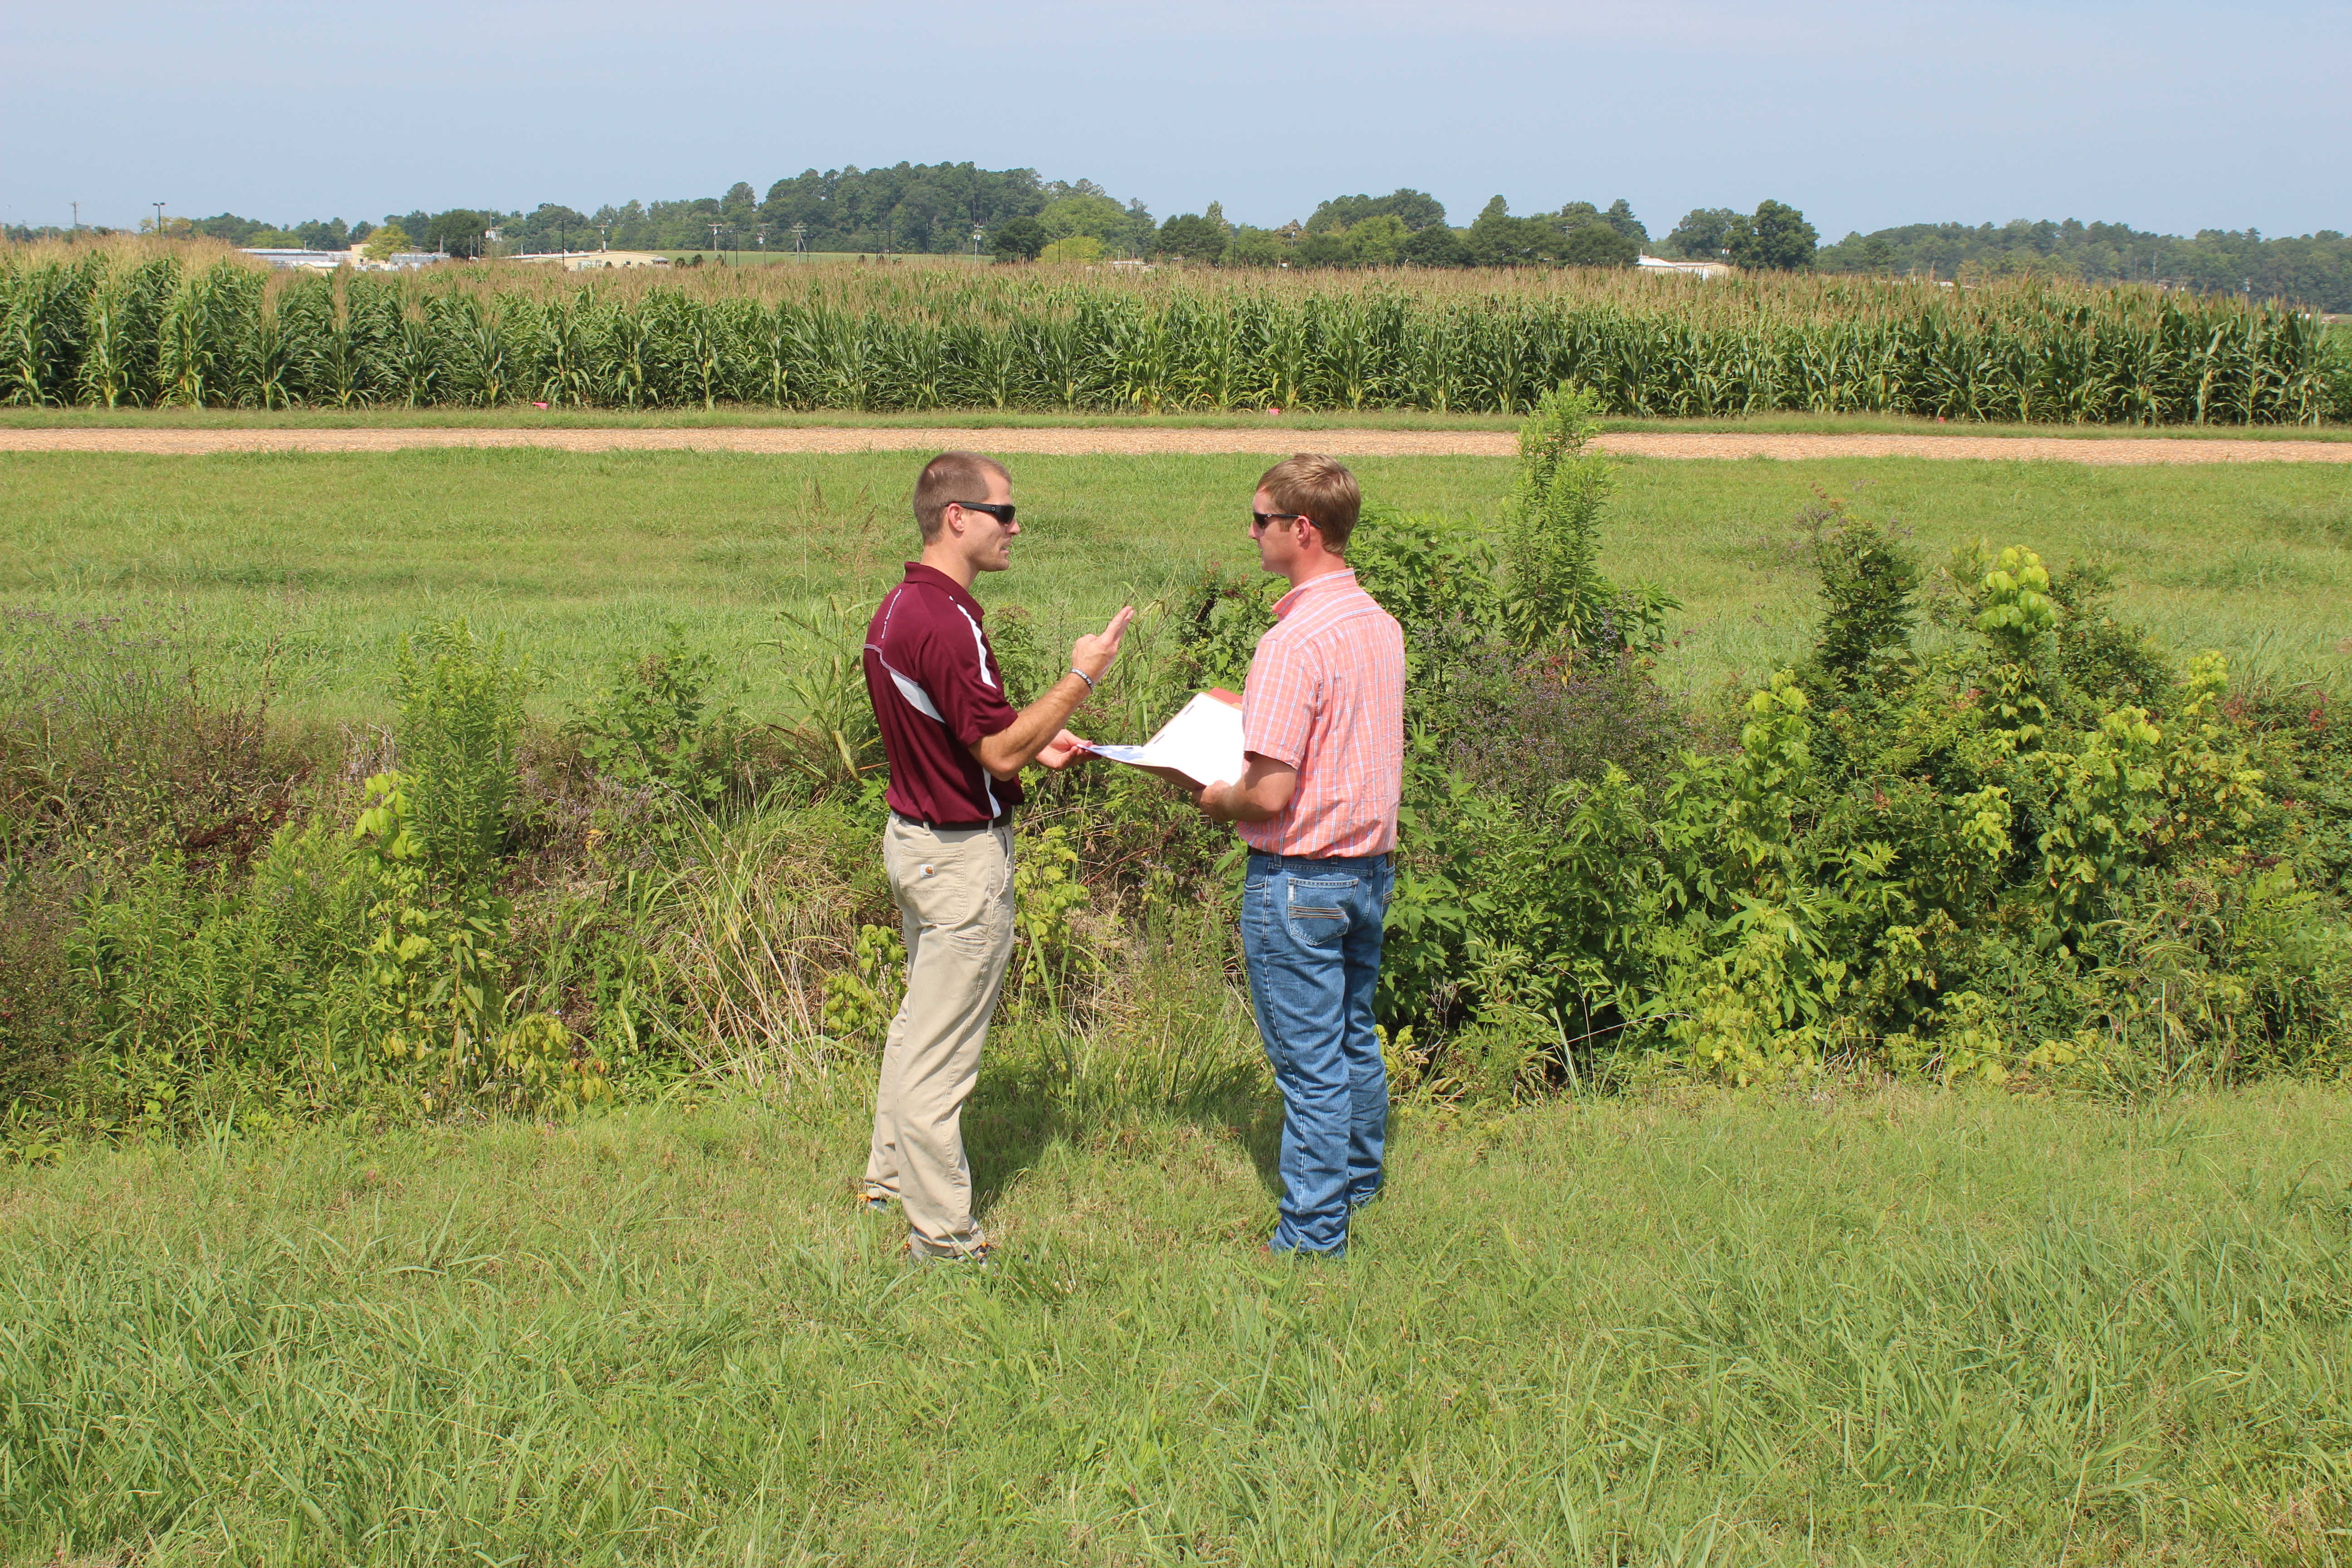 Discussing how best to monitor the role of cover crops for water quality improvement